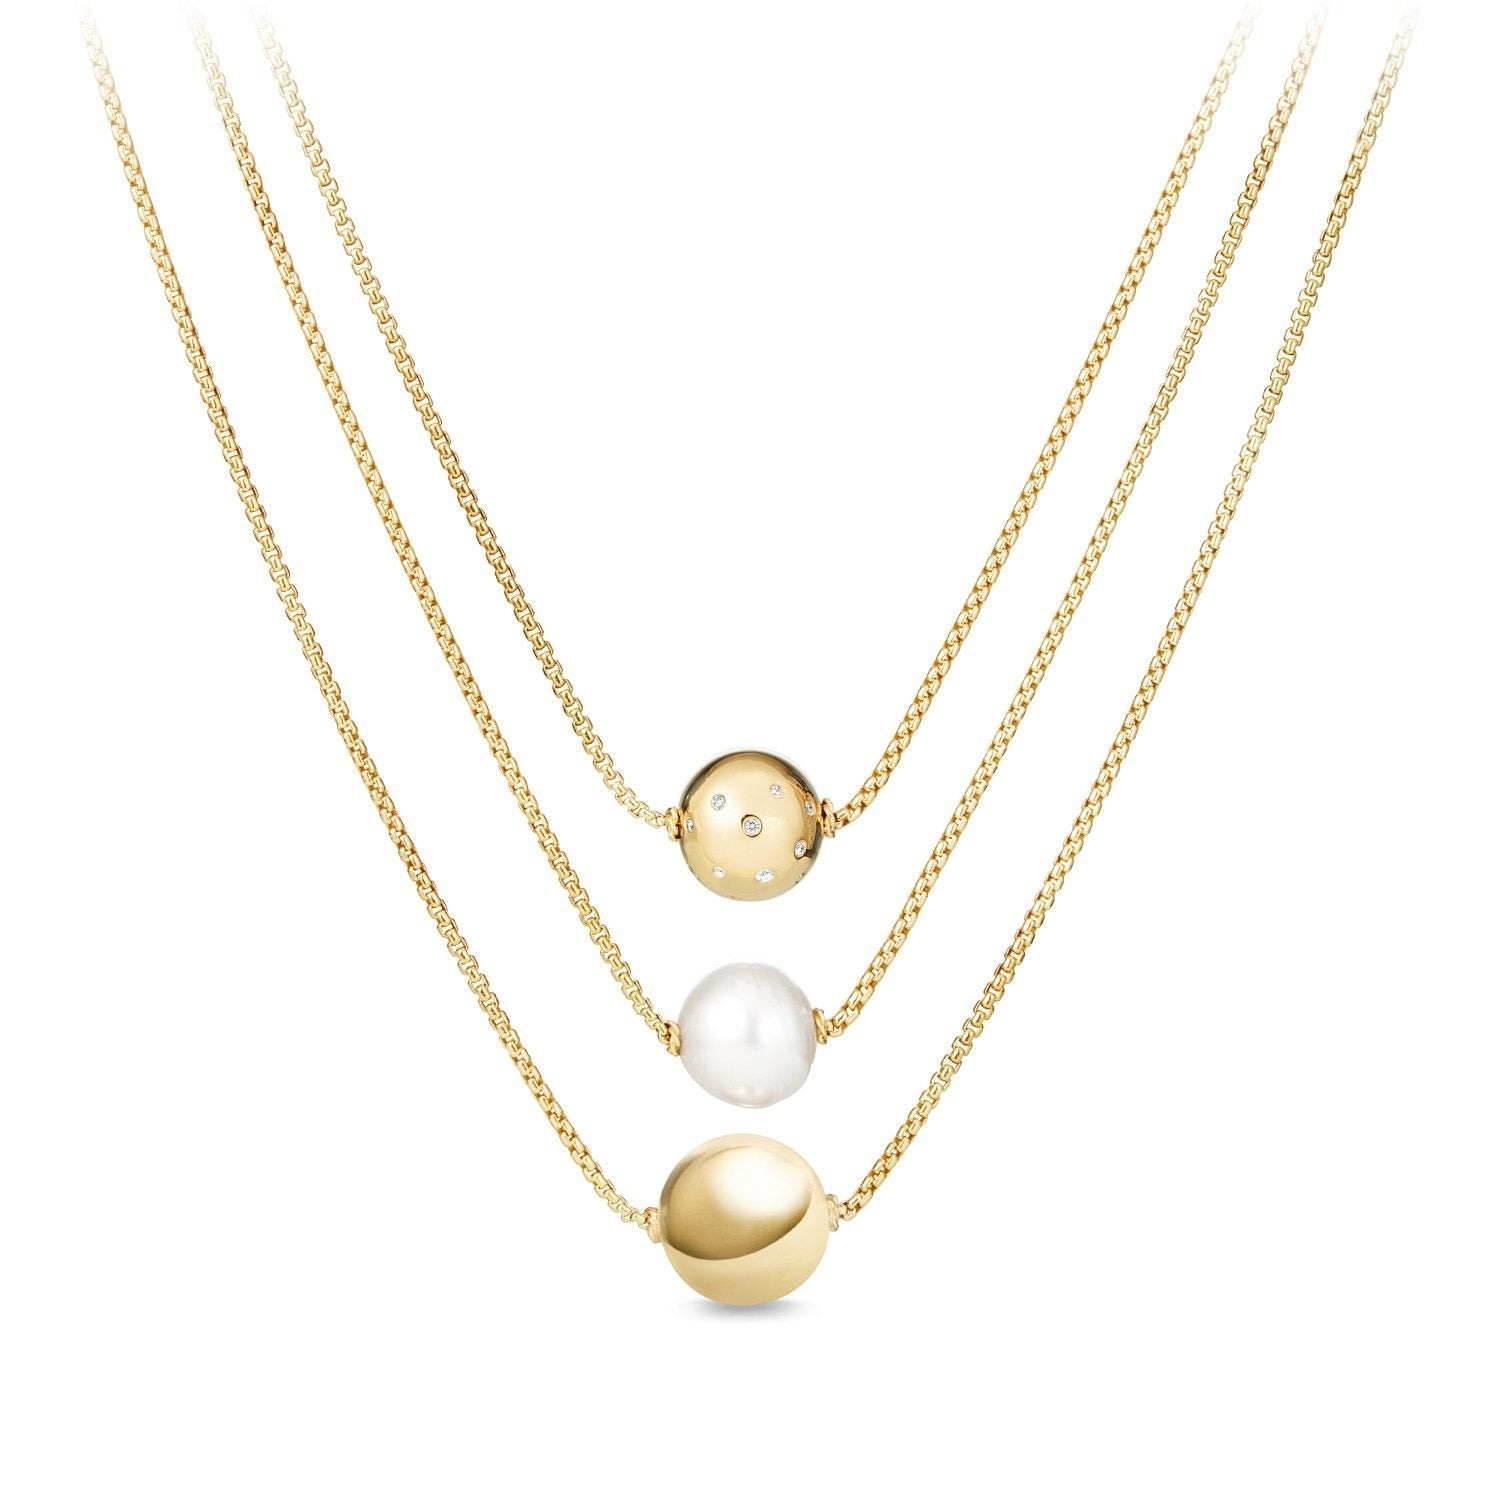 Solari Triple Drop Necklace with Diamonds in 18K Gold